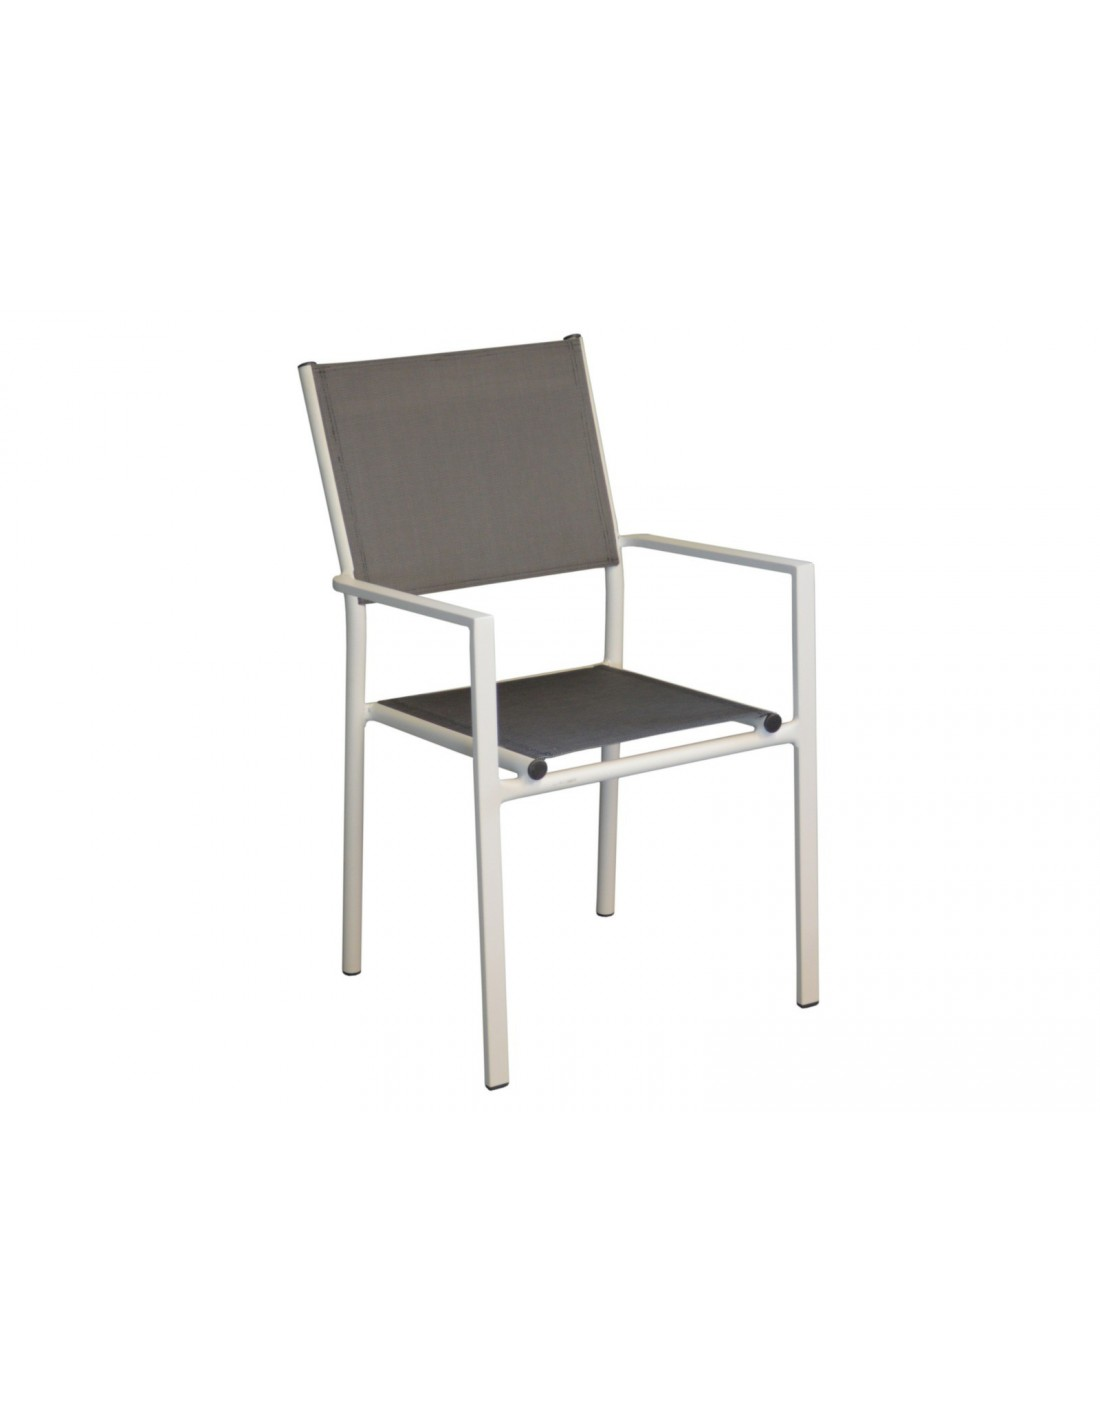 fauteuil de jardin thema blanc sand empilable en aluminium proloisirs. Black Bedroom Furniture Sets. Home Design Ideas